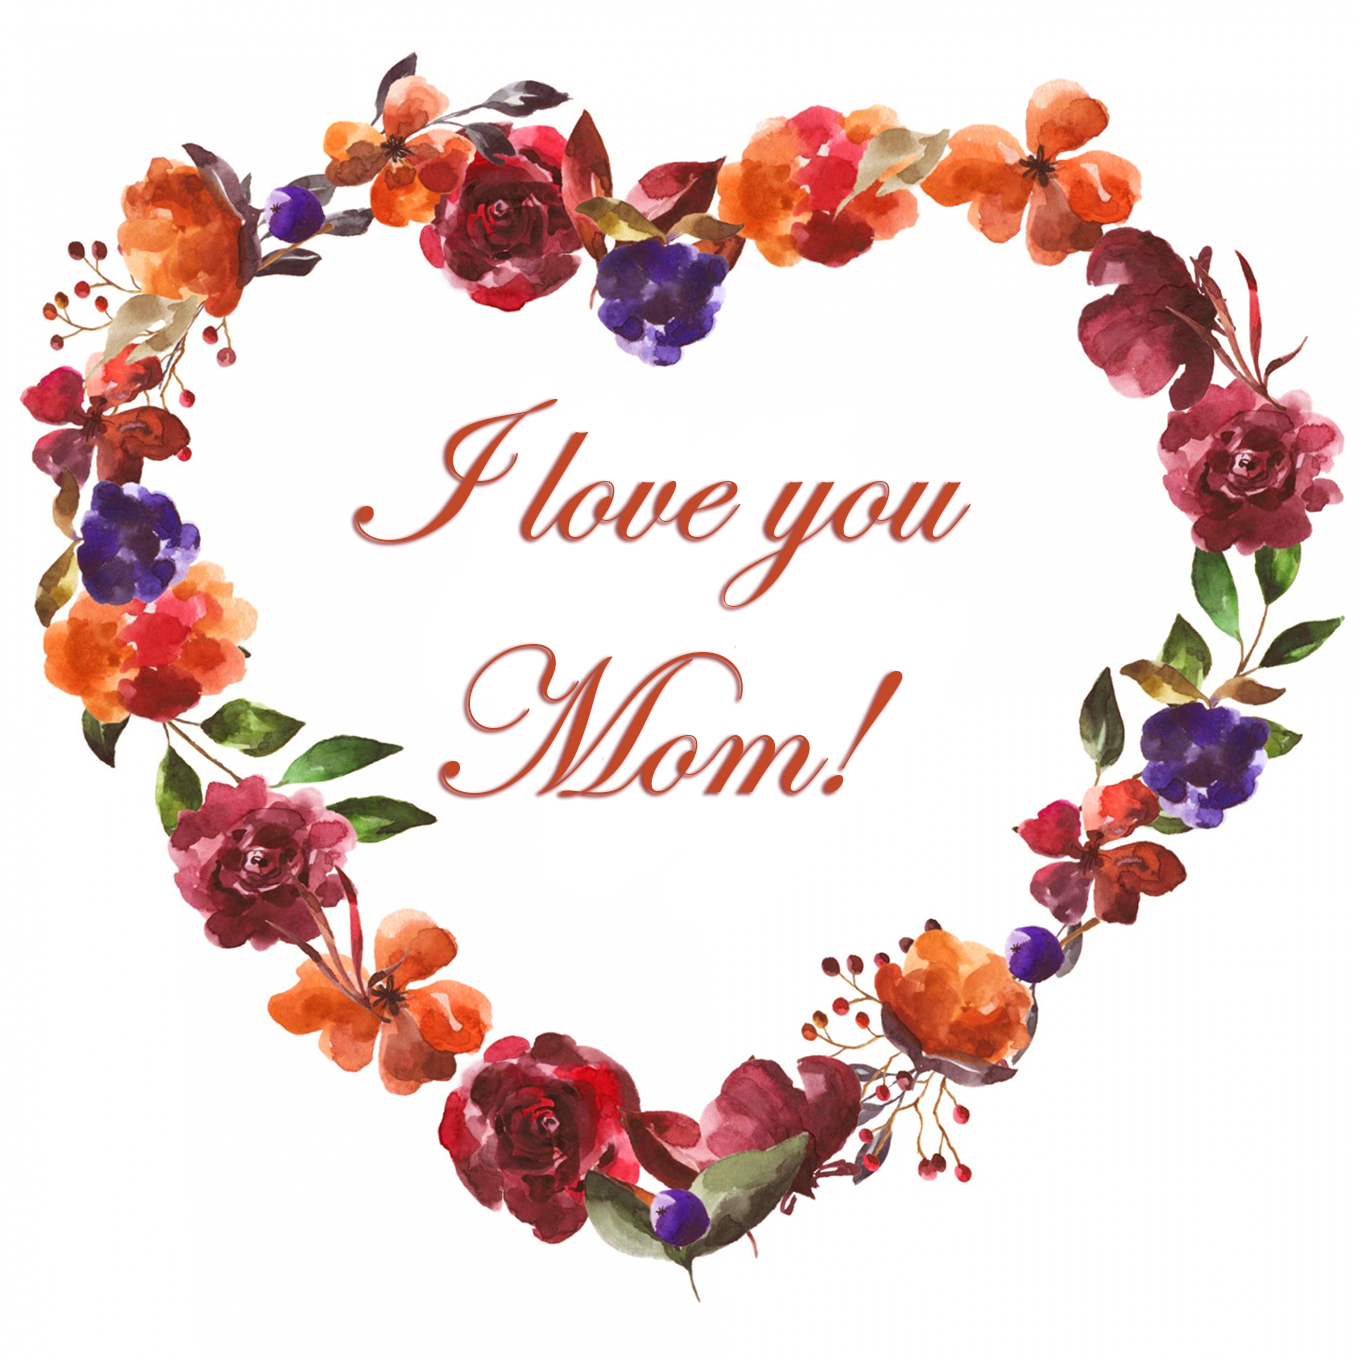 I love you Mom with flower heart